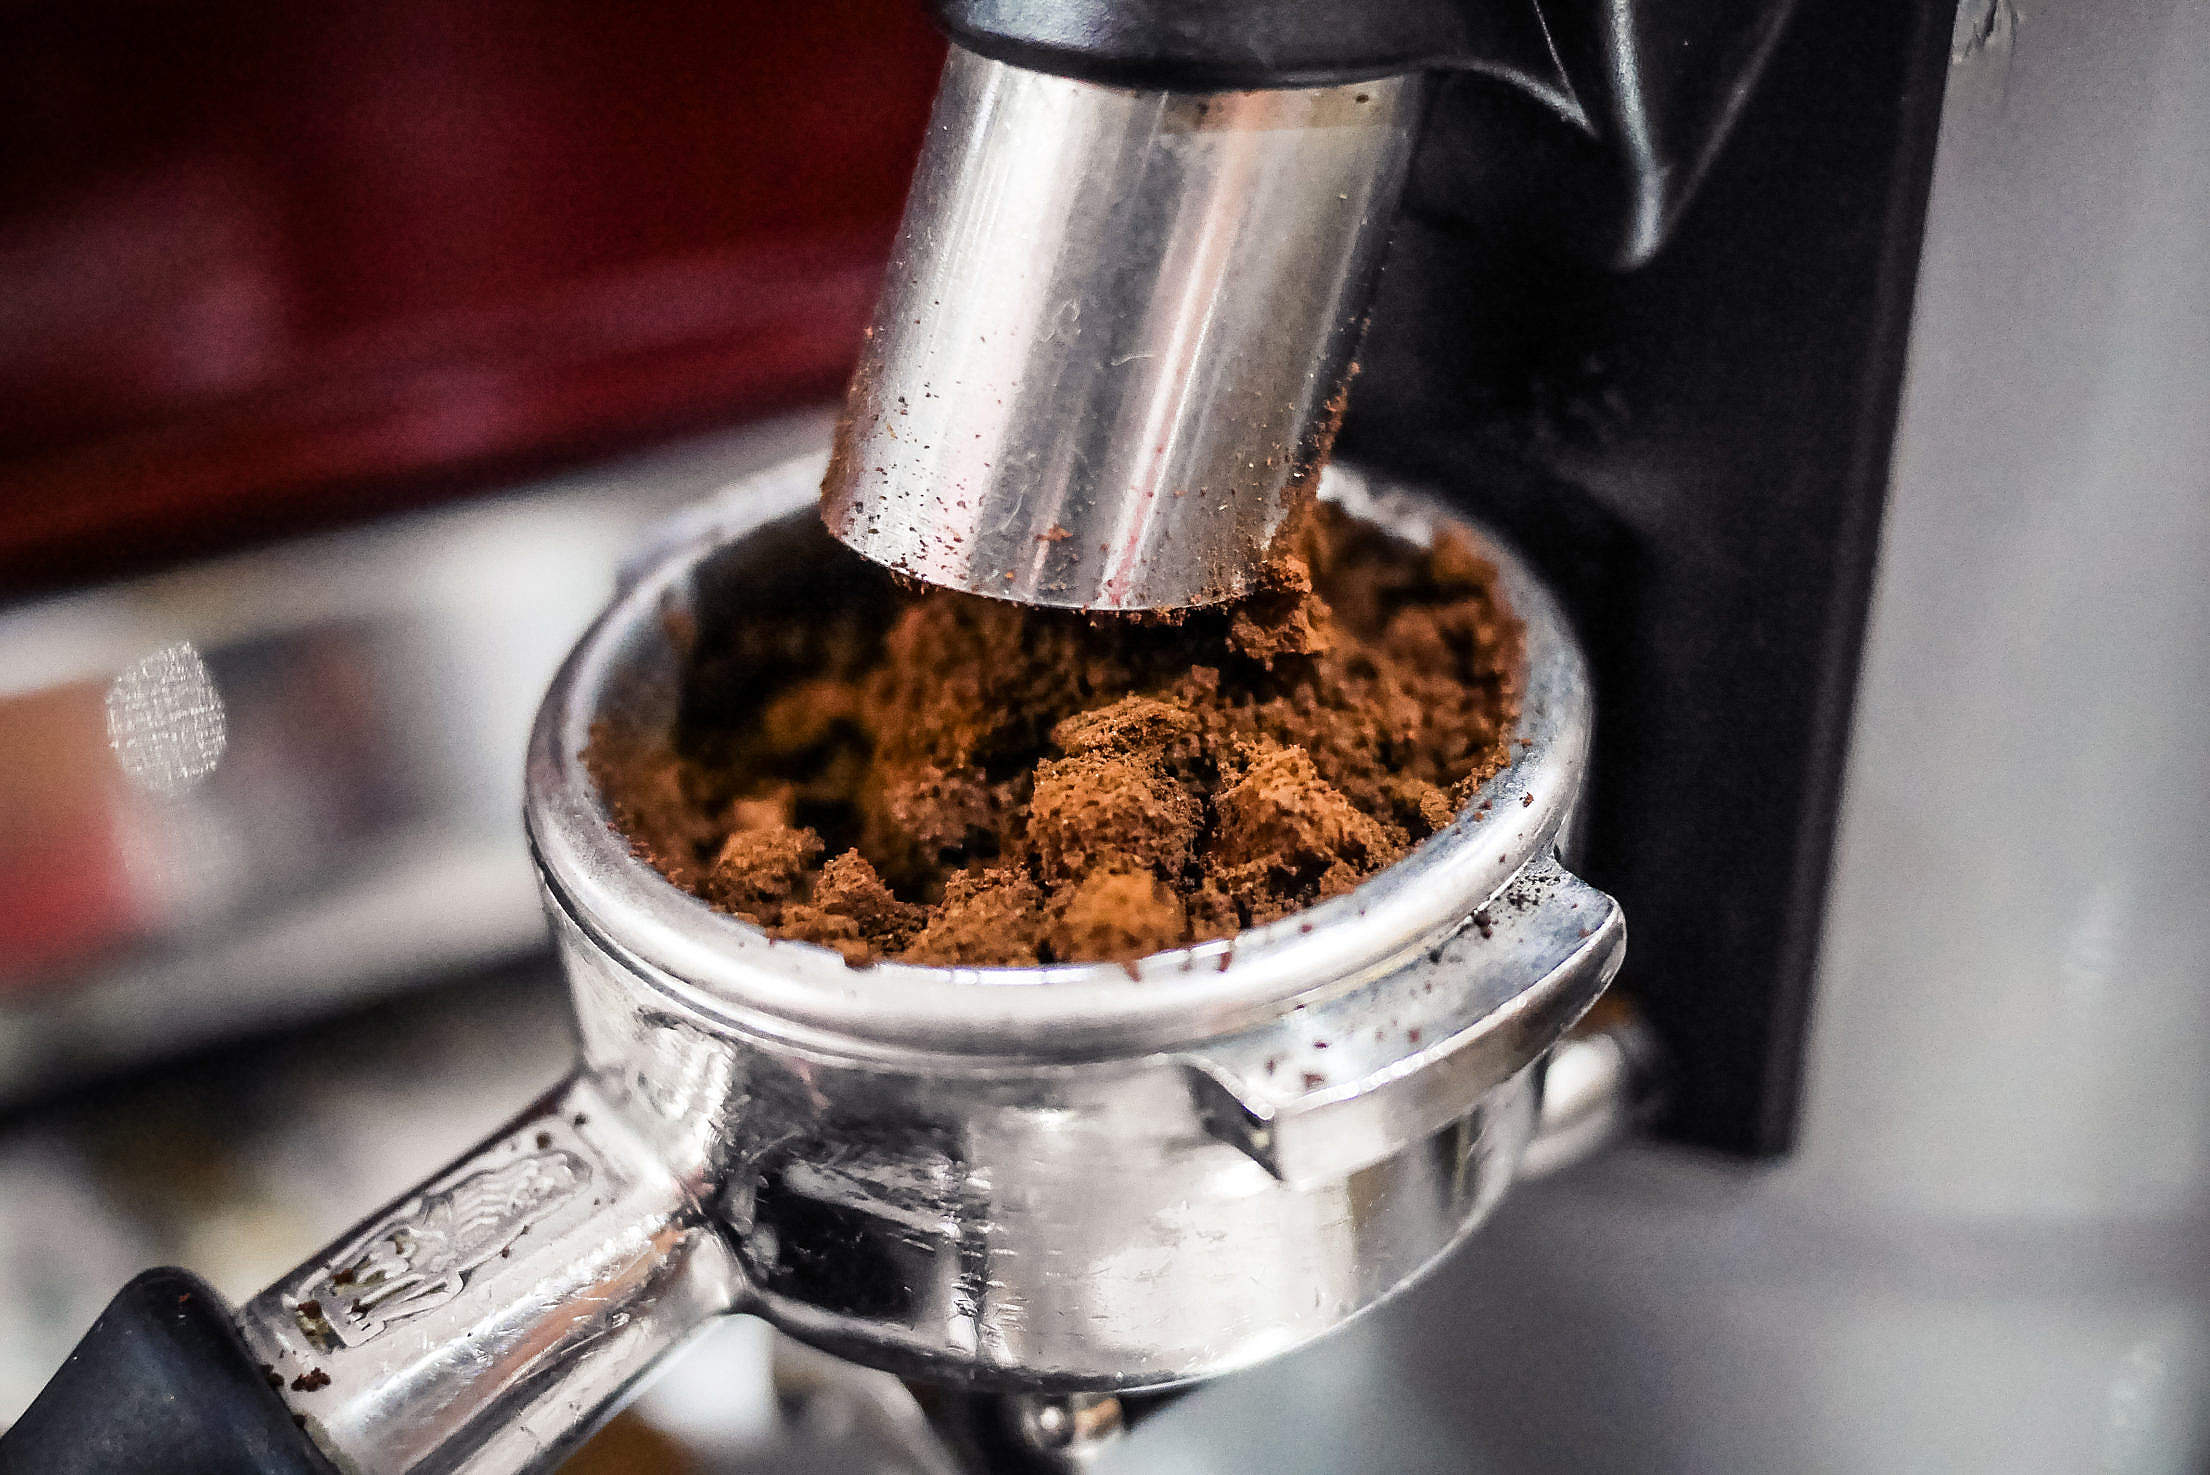 Freshly Ground Coffee from Coffee Grinder